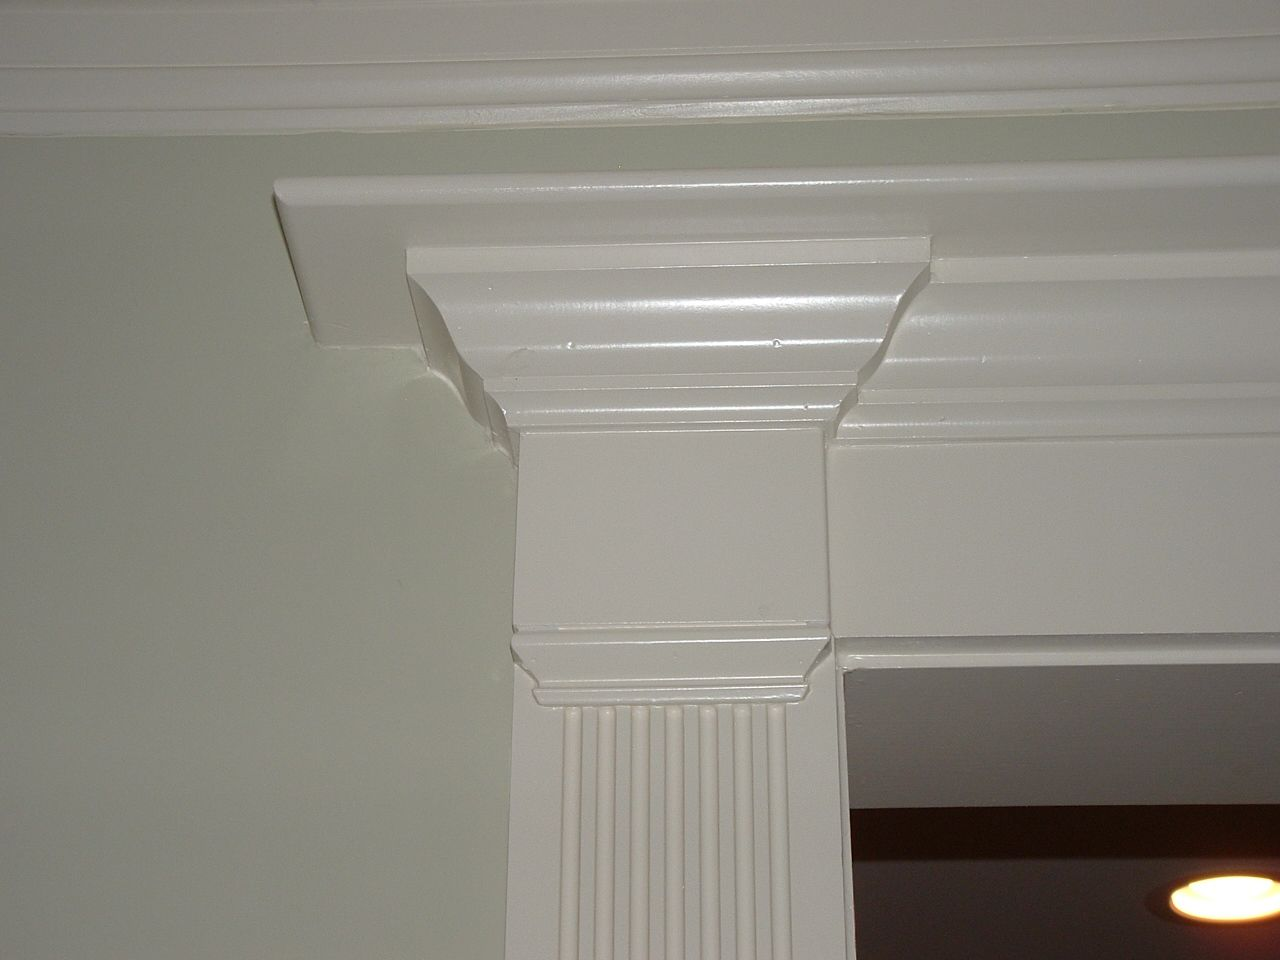 Fluted Casing House Trim Kitchen Near Window Crown Molding